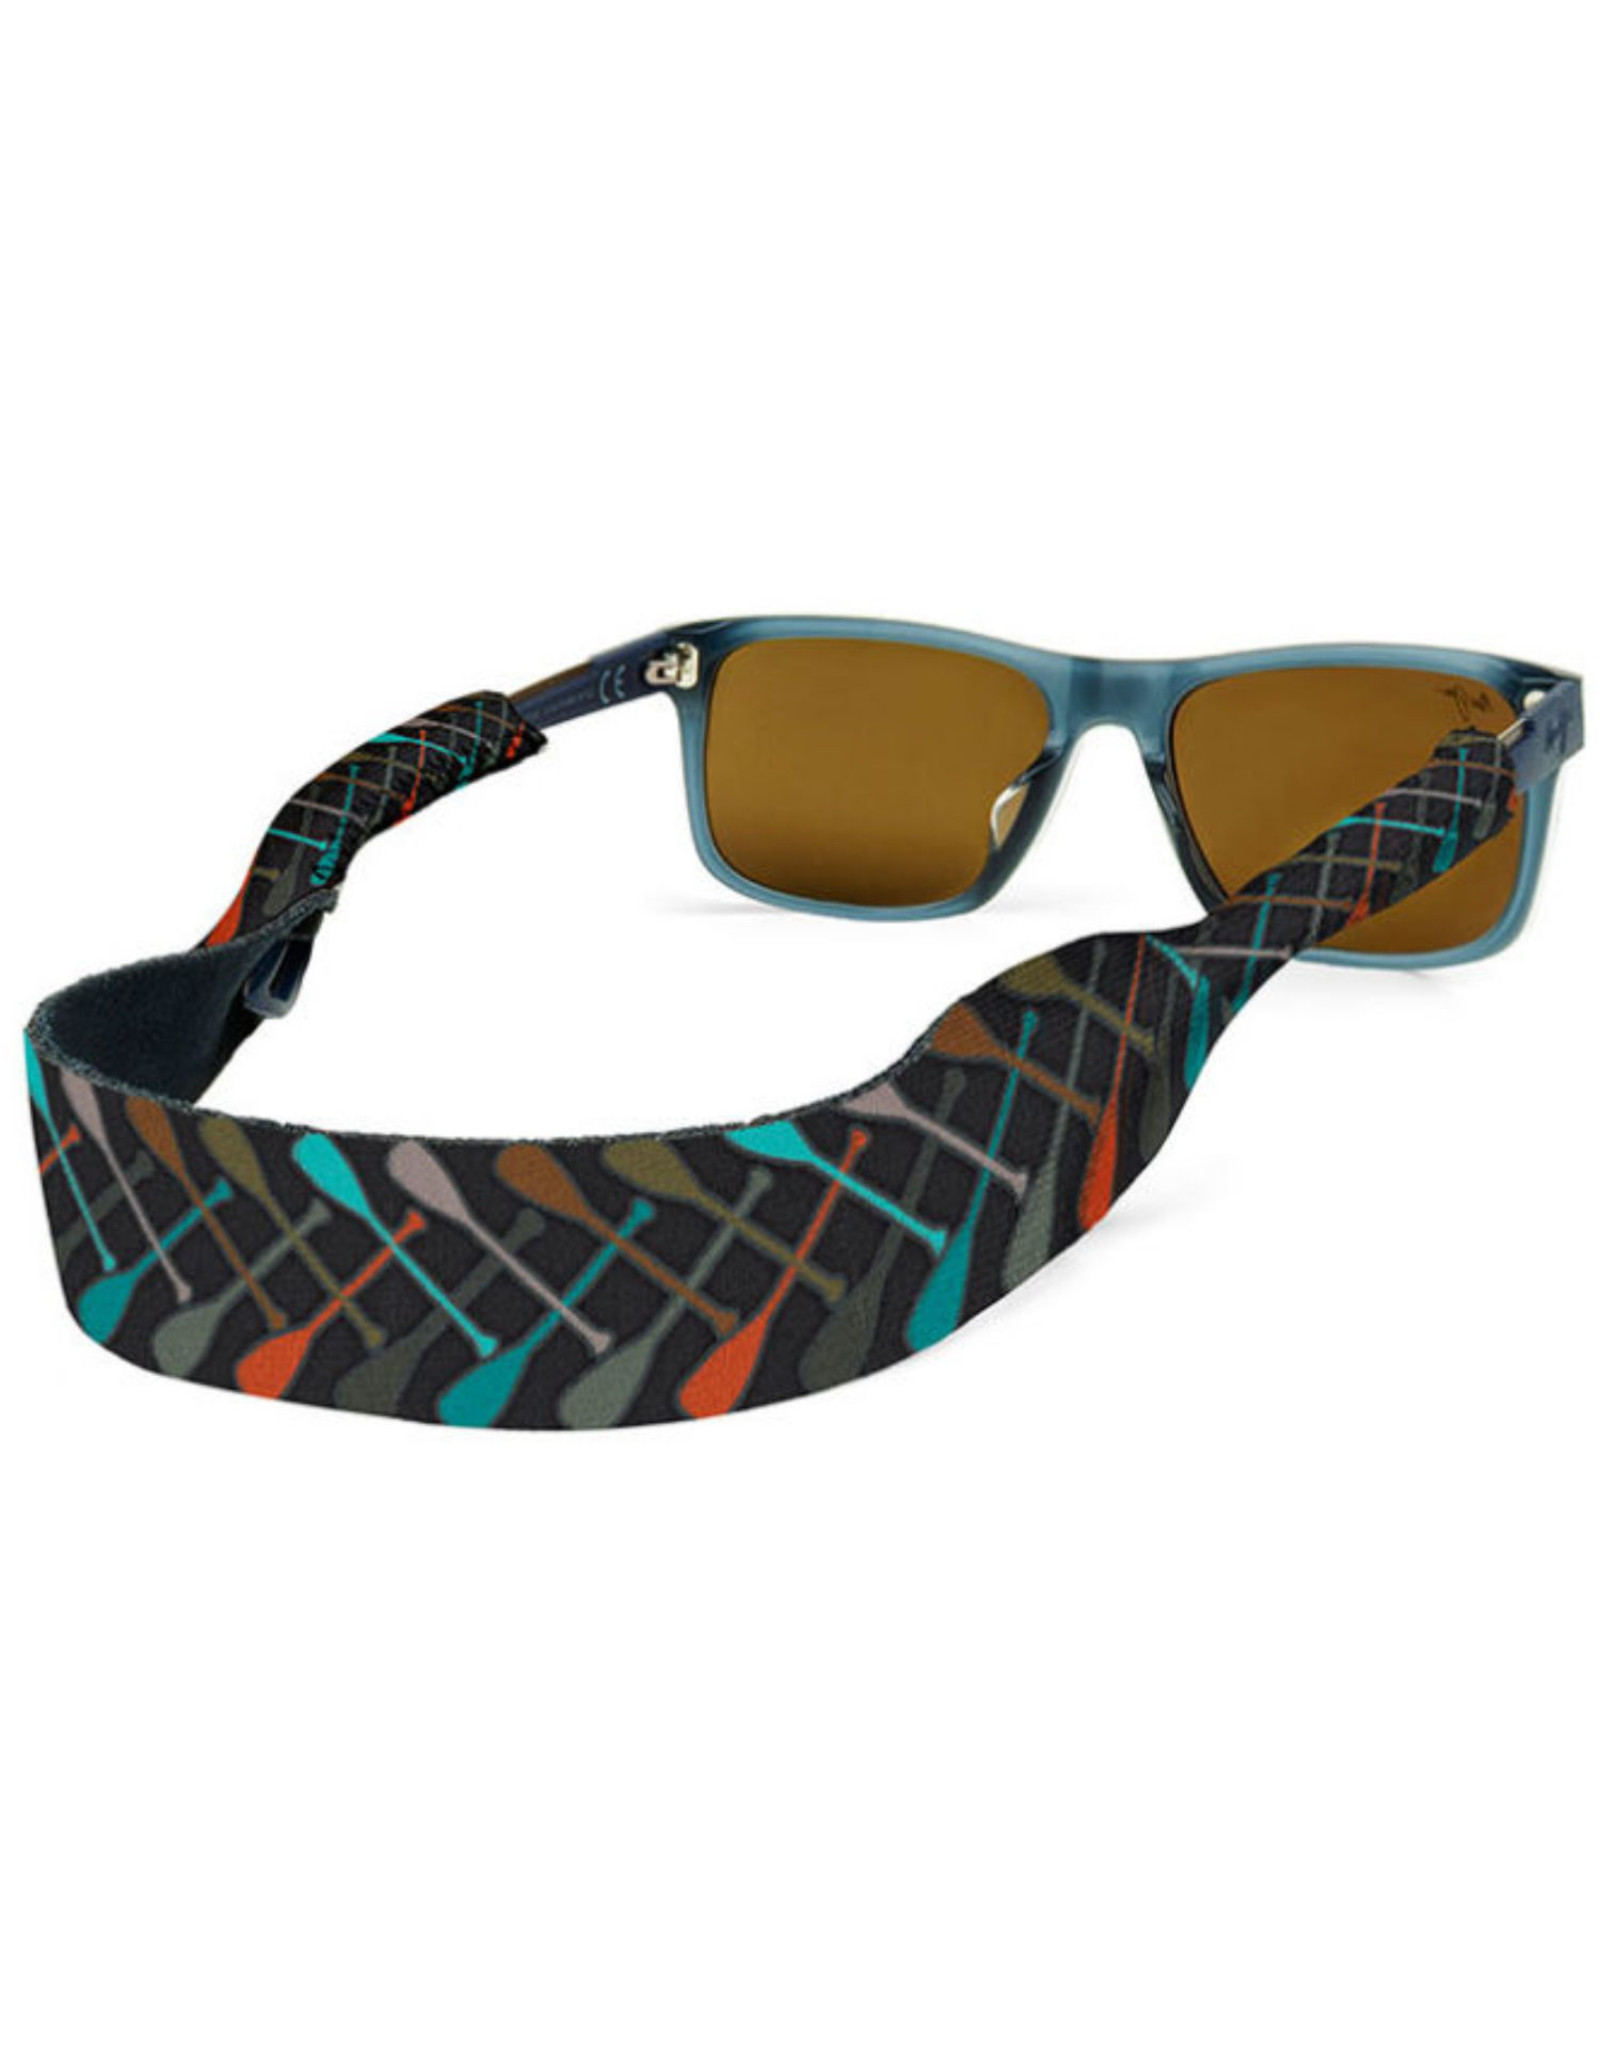 Croakies Original Neoprene Eyewear Retainer